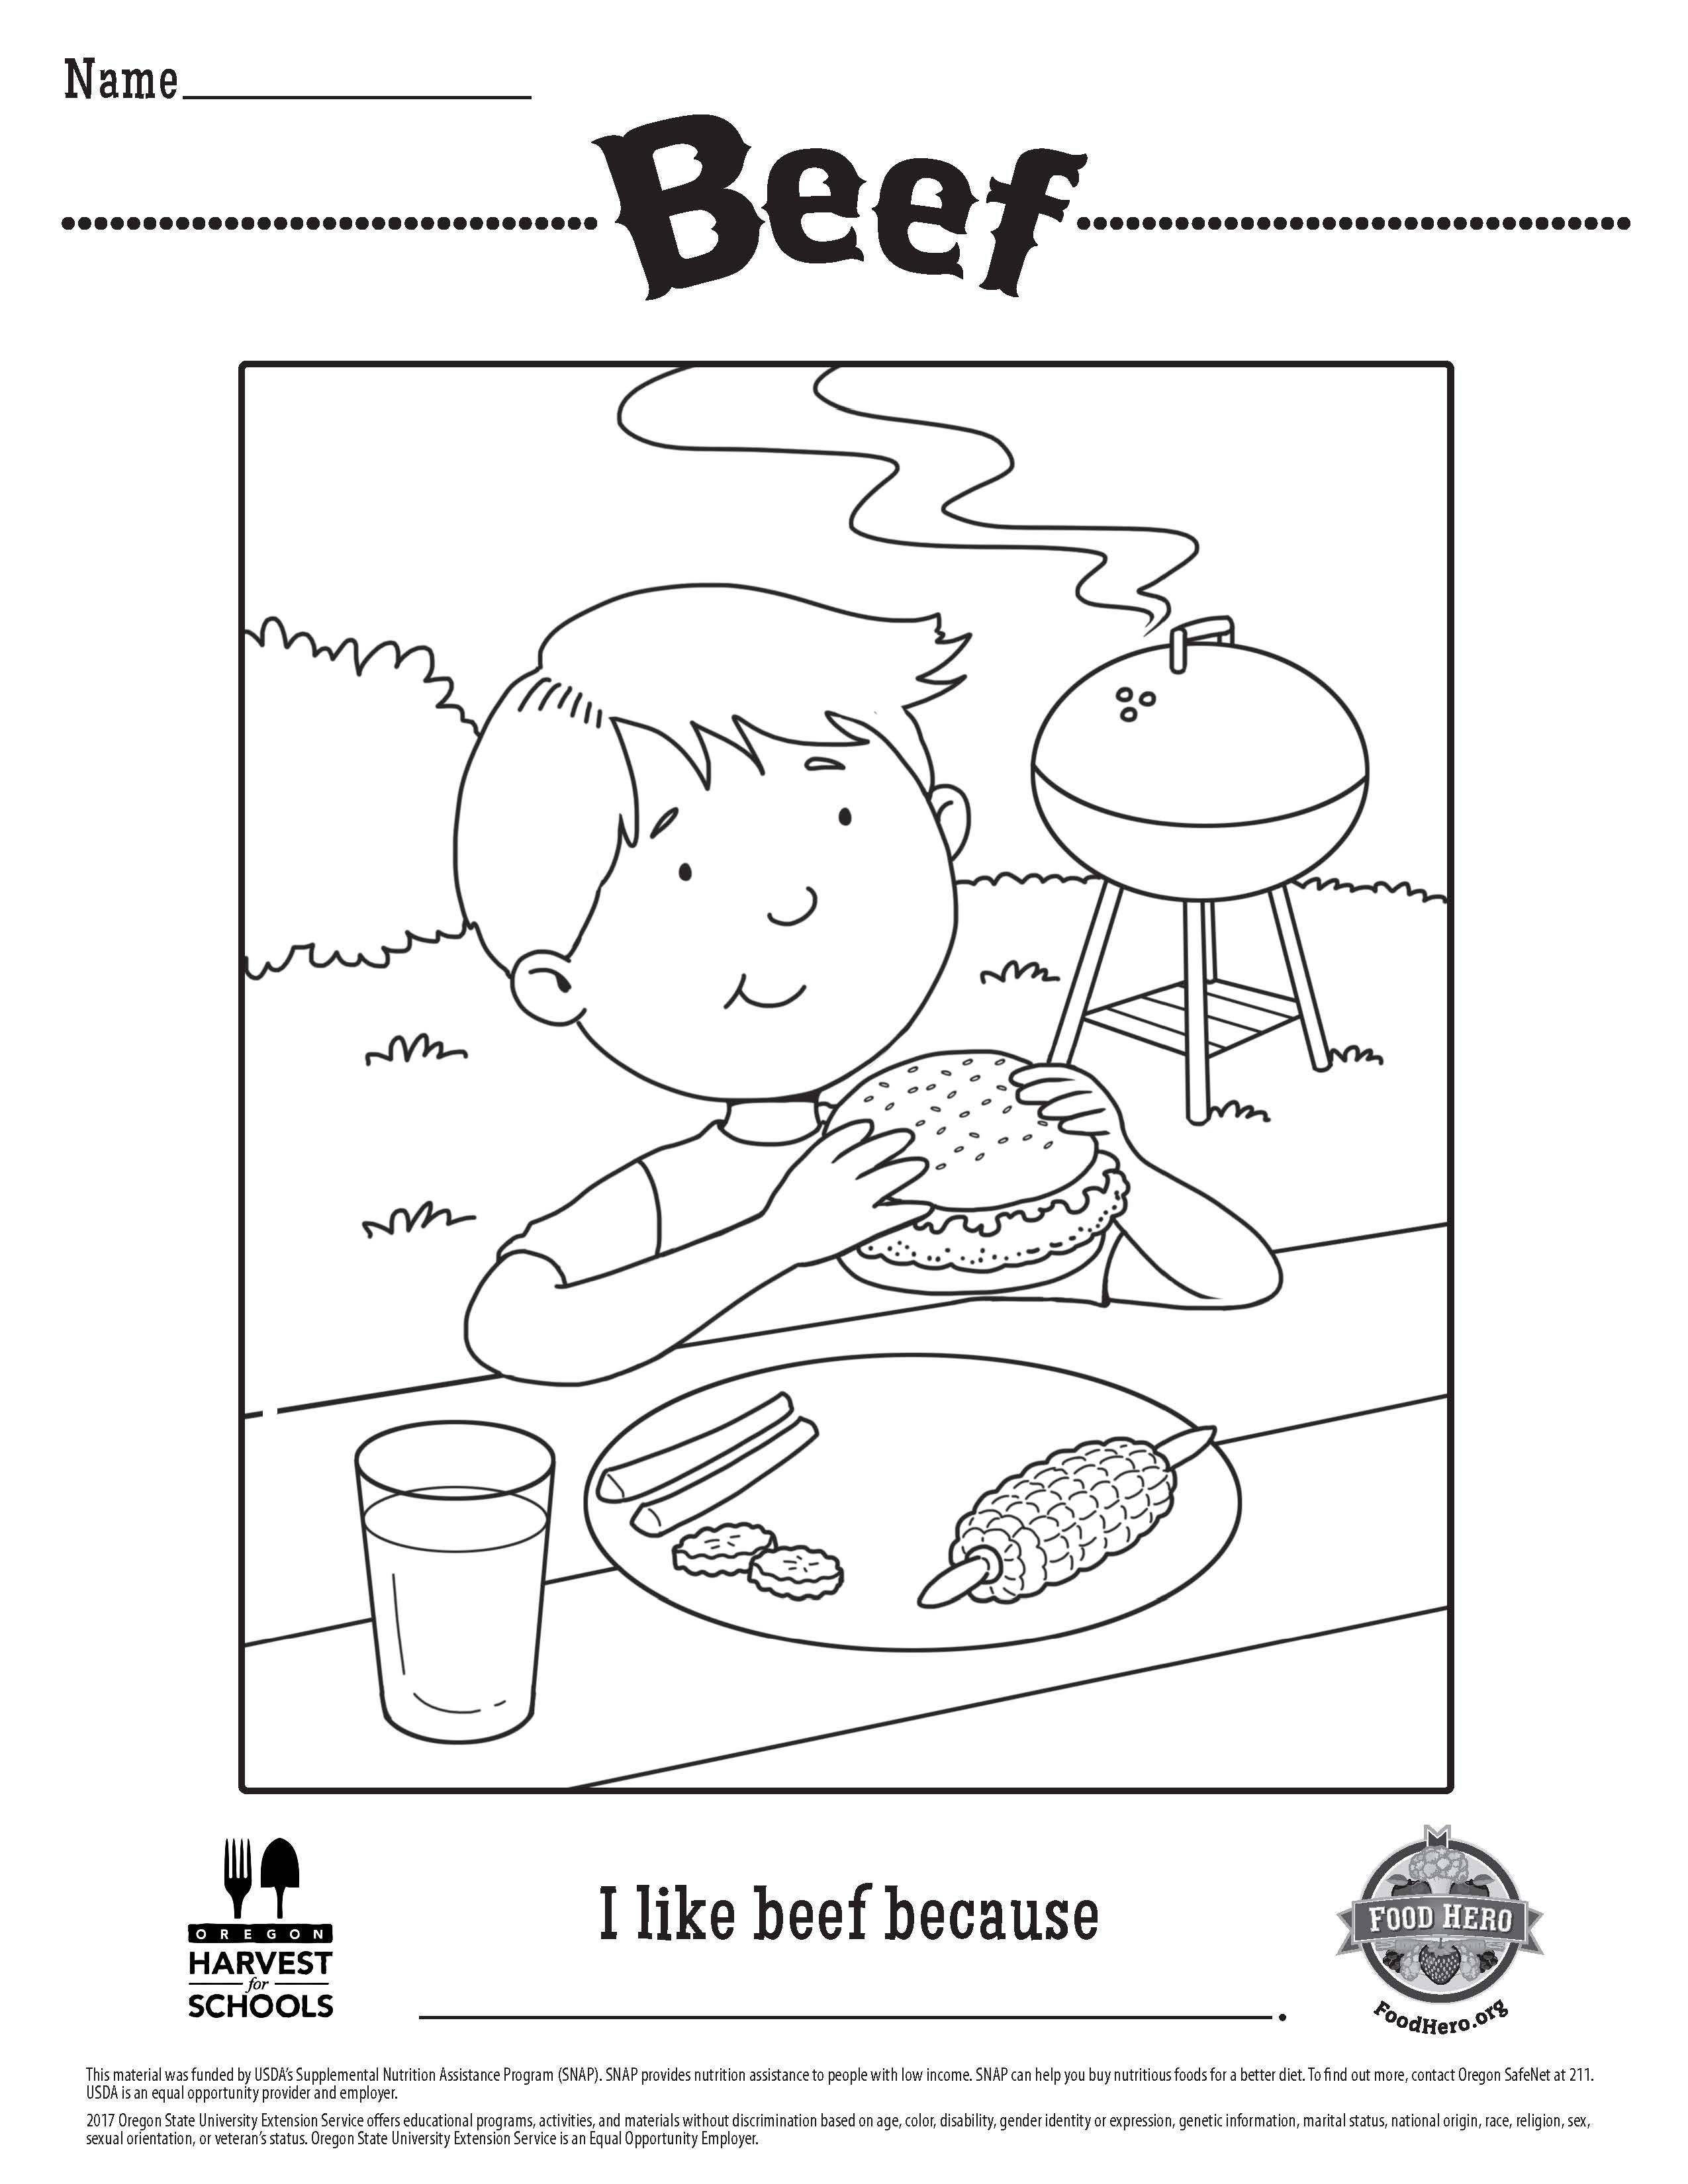 Food Hero Free Printable Coloring Sheet About Beef